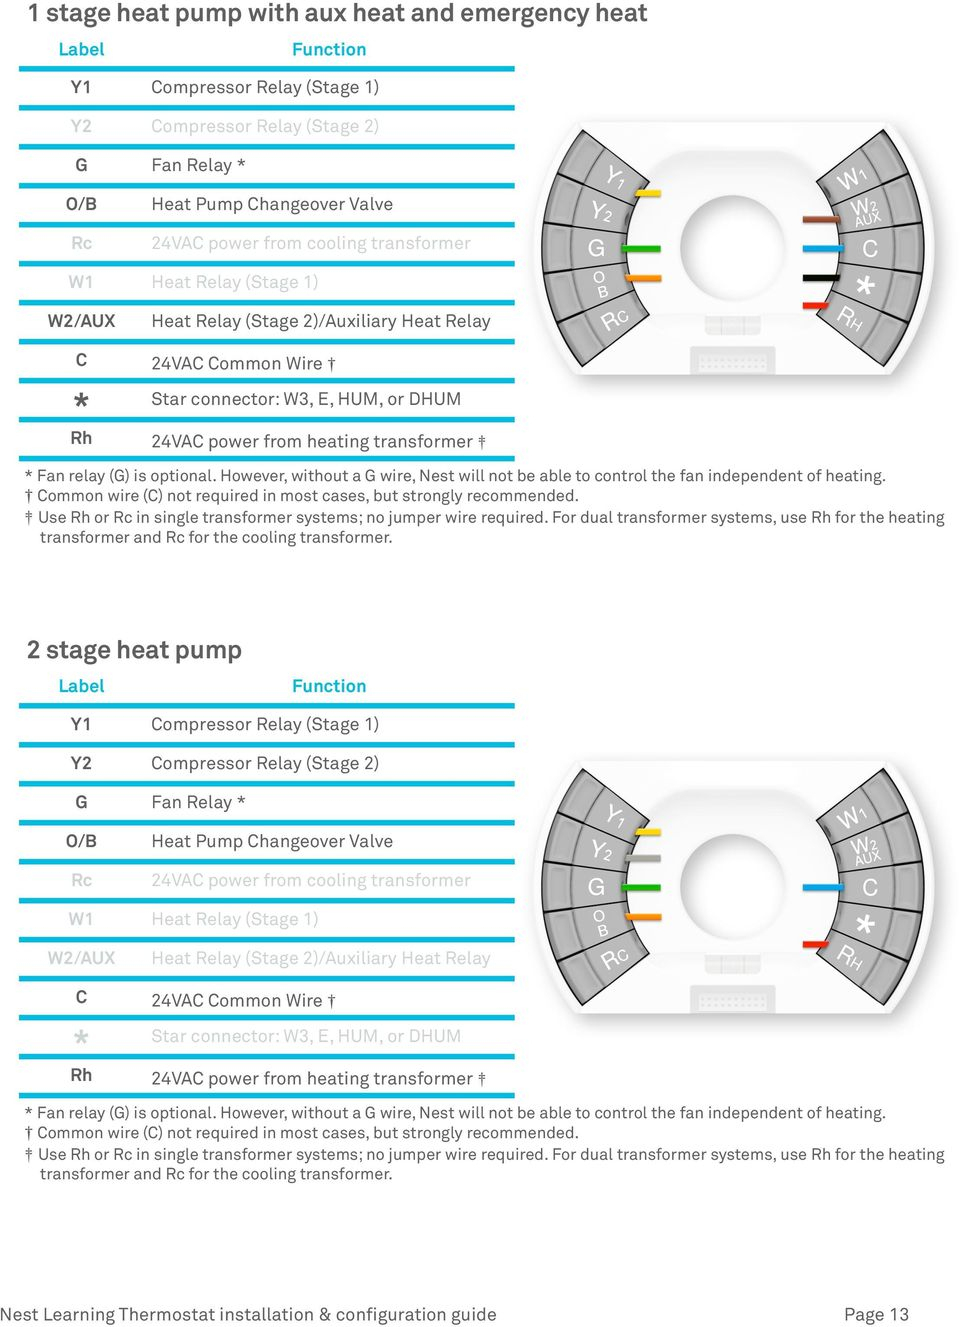 nest thermostat wiring diagram for heat pump wiring diagram nest Bryant Heat Pump Wiring Diagram nest thermostat wiring diagram for heat pump wiring diagram \u2013 nest gen 2 wiring diagram